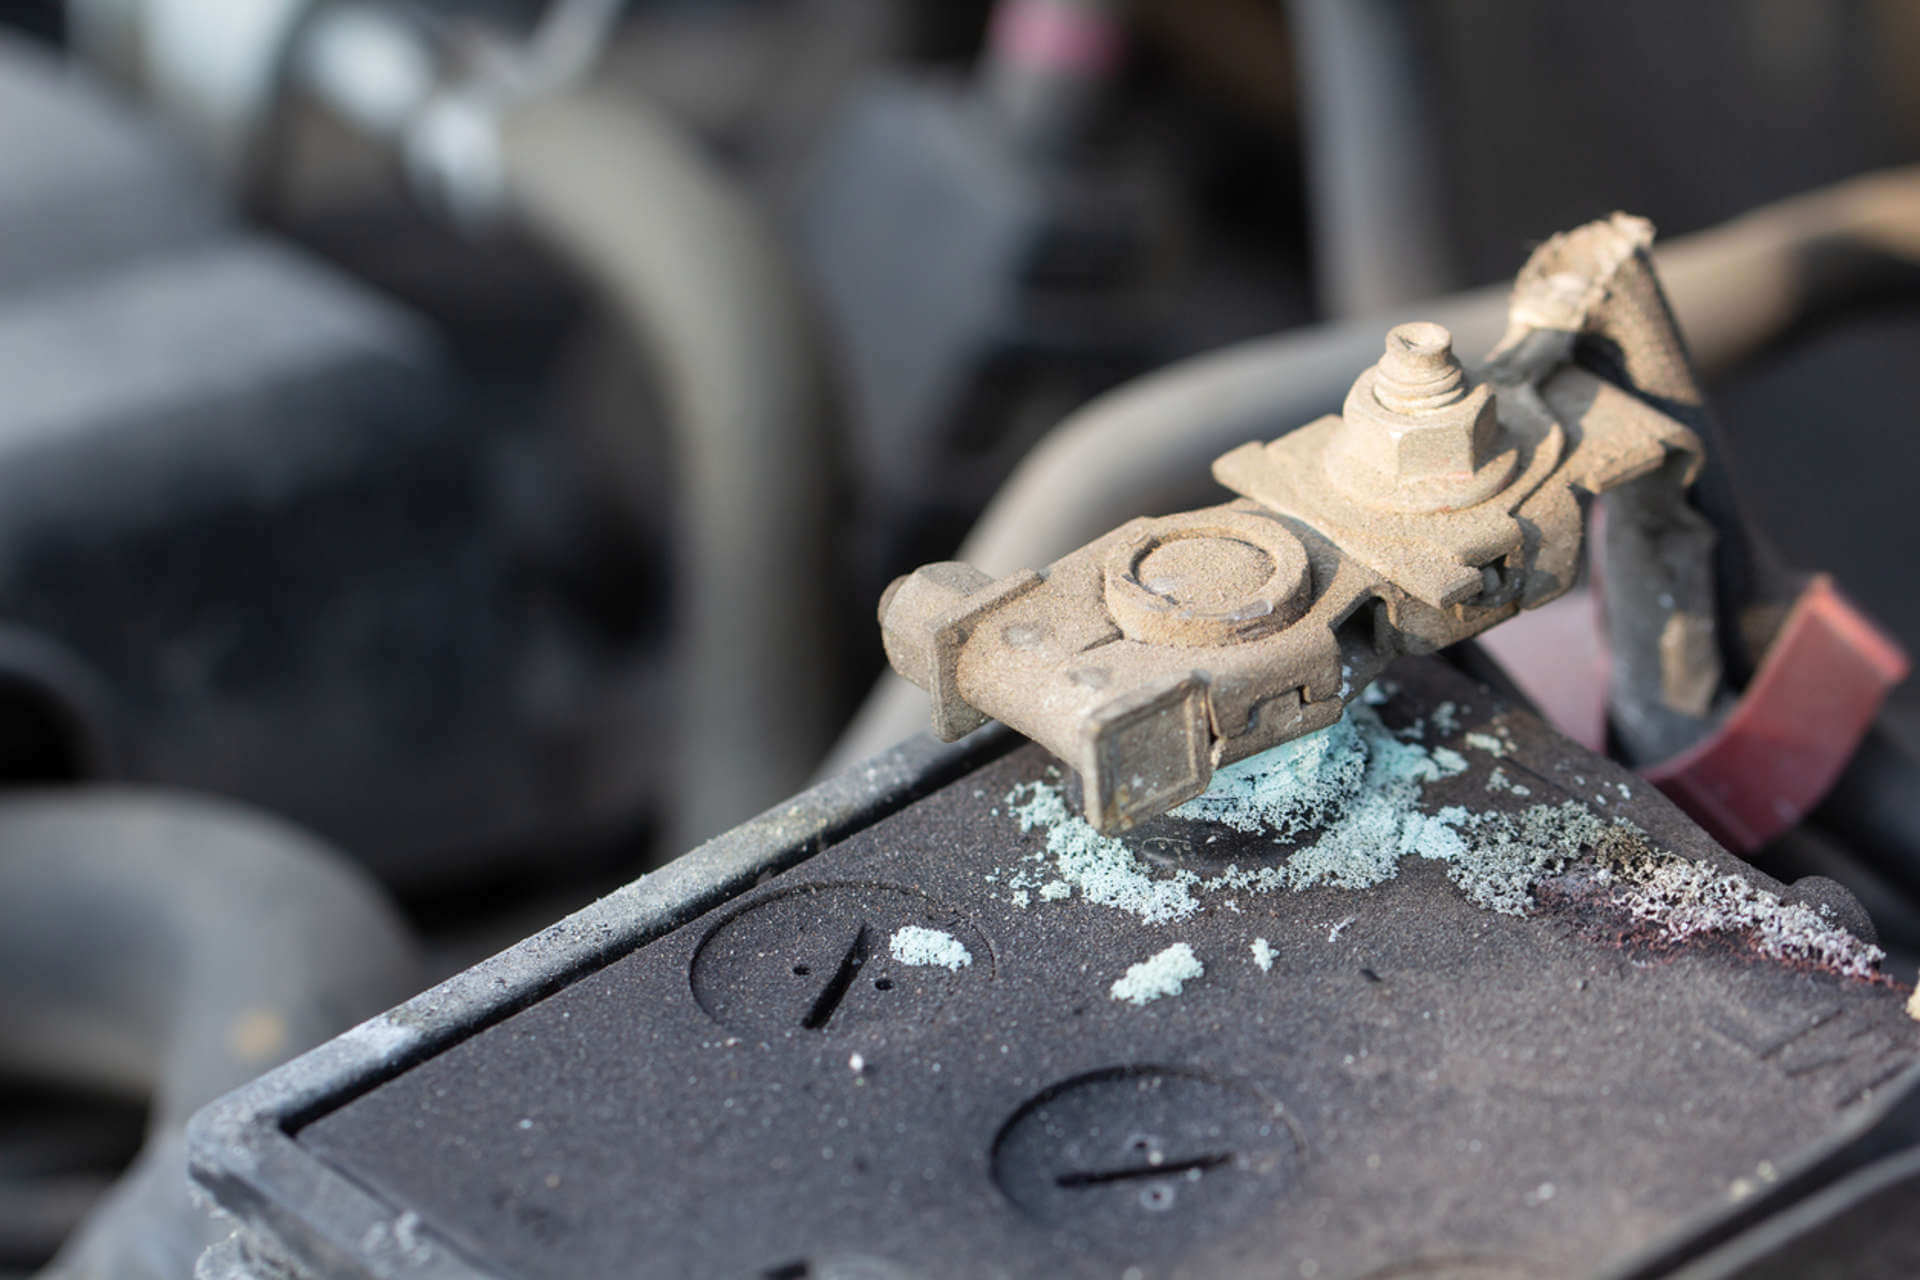 Corroded battery terminal in car. Showing old and damaged car battery.